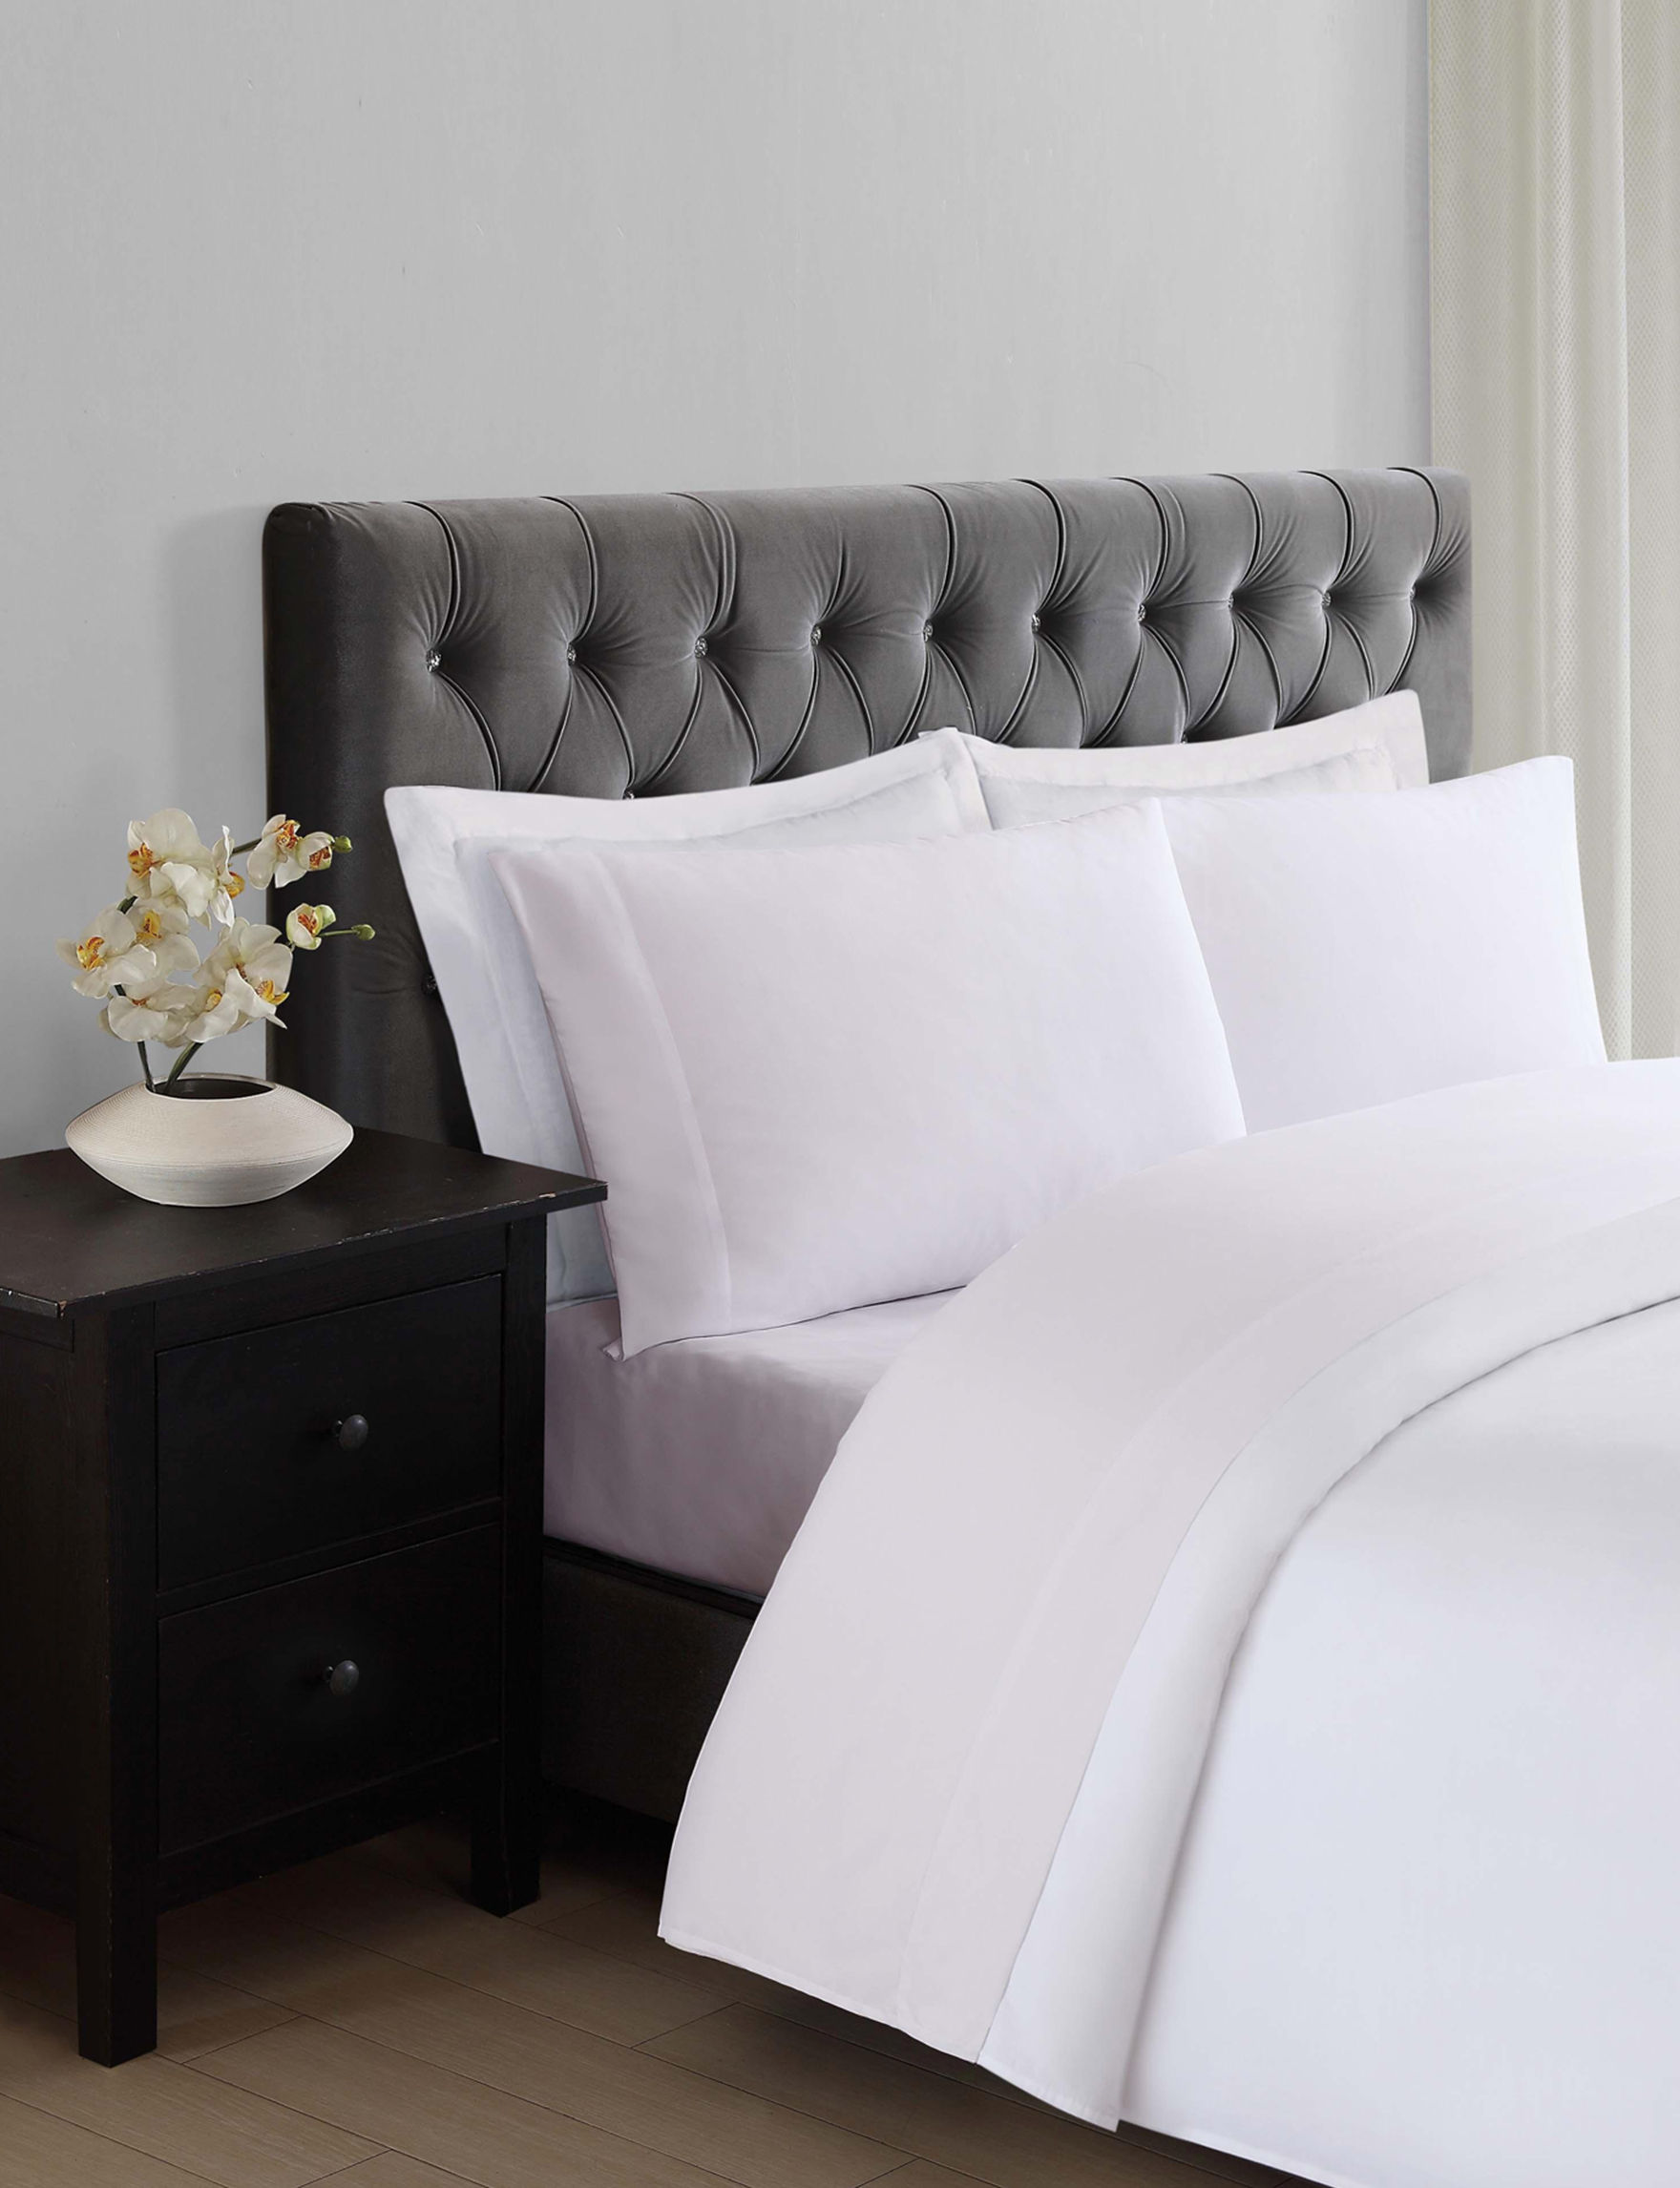 Truly Soft White Sheets & Pillowcases